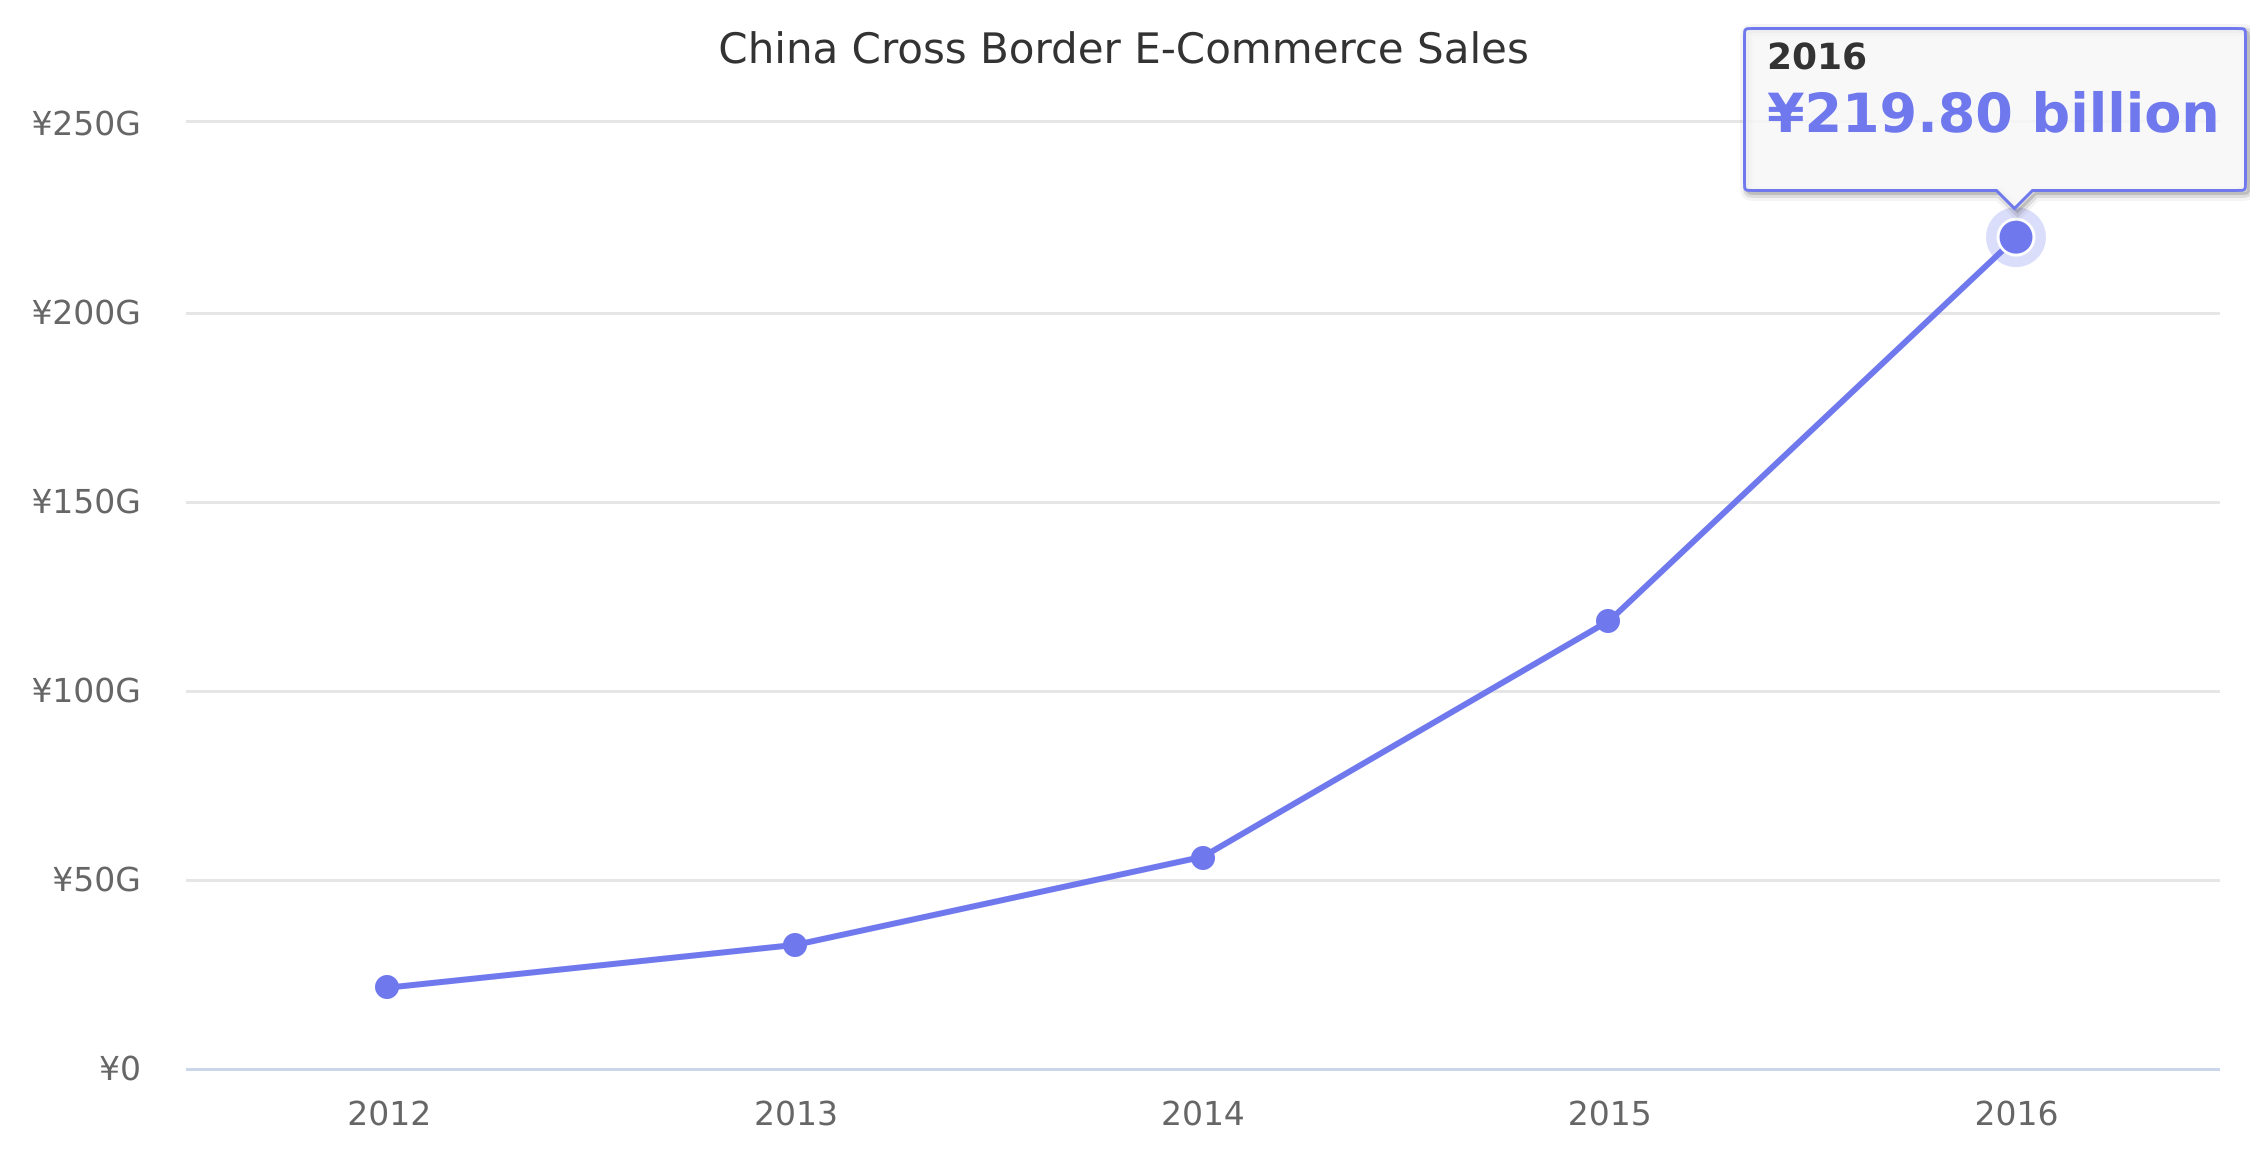 China Cross Border E-Commerce Sales 2012-2016